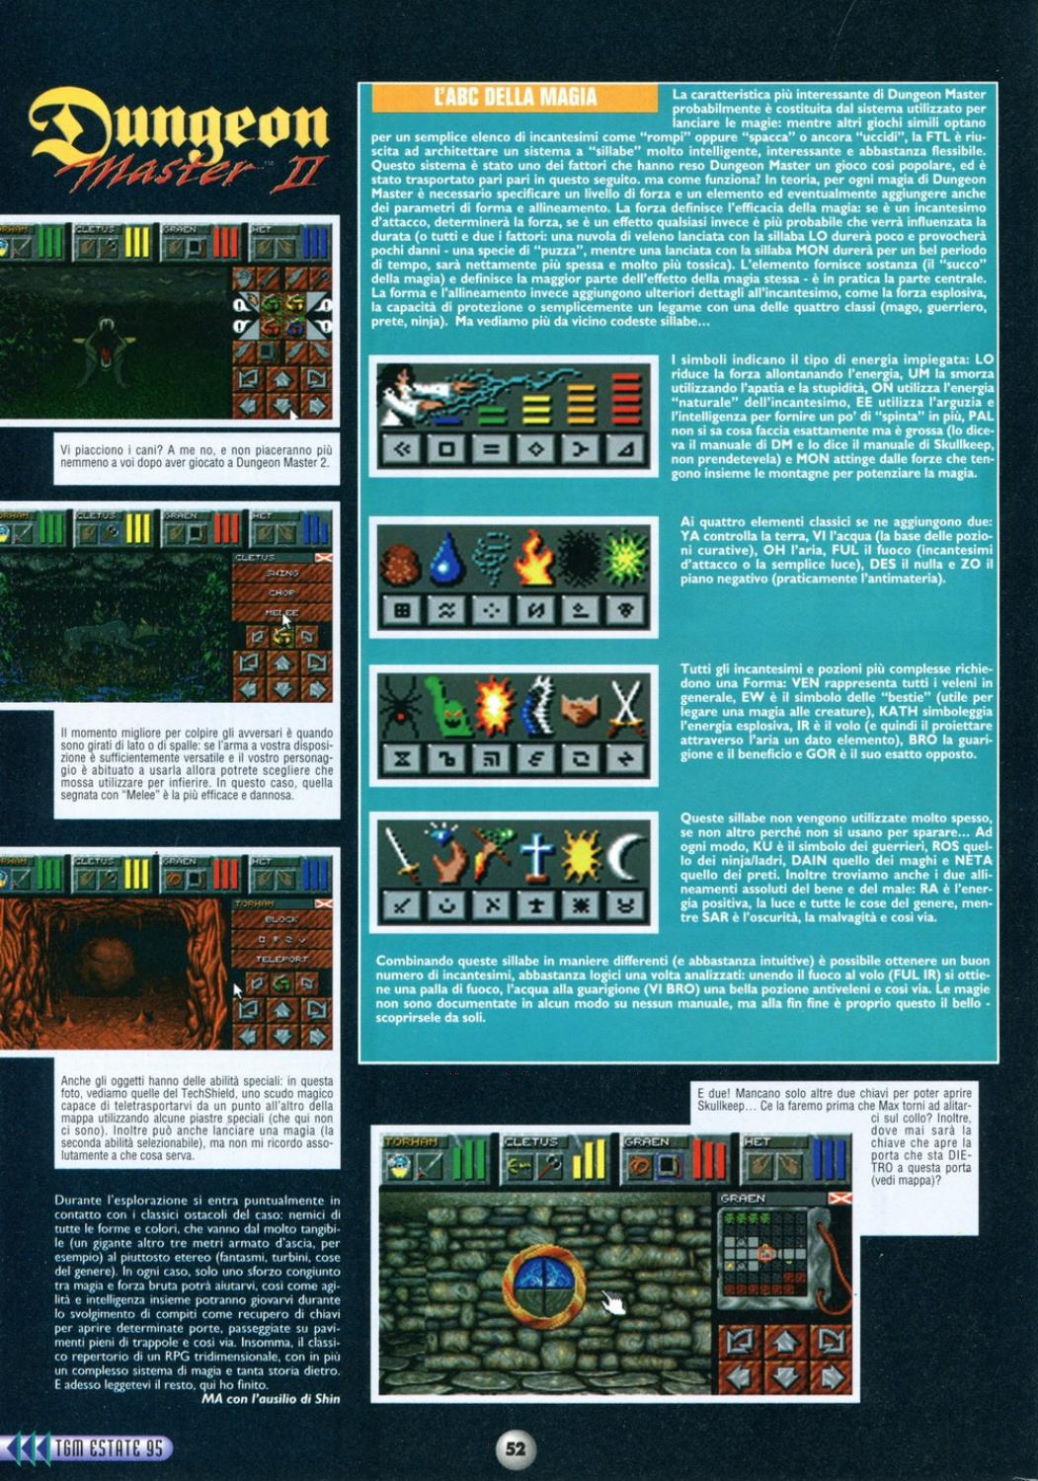 Dungeon Master II for PC Review published in Italian magazine 'The Games Machine', Issue #77 July-August 1995, Page 52